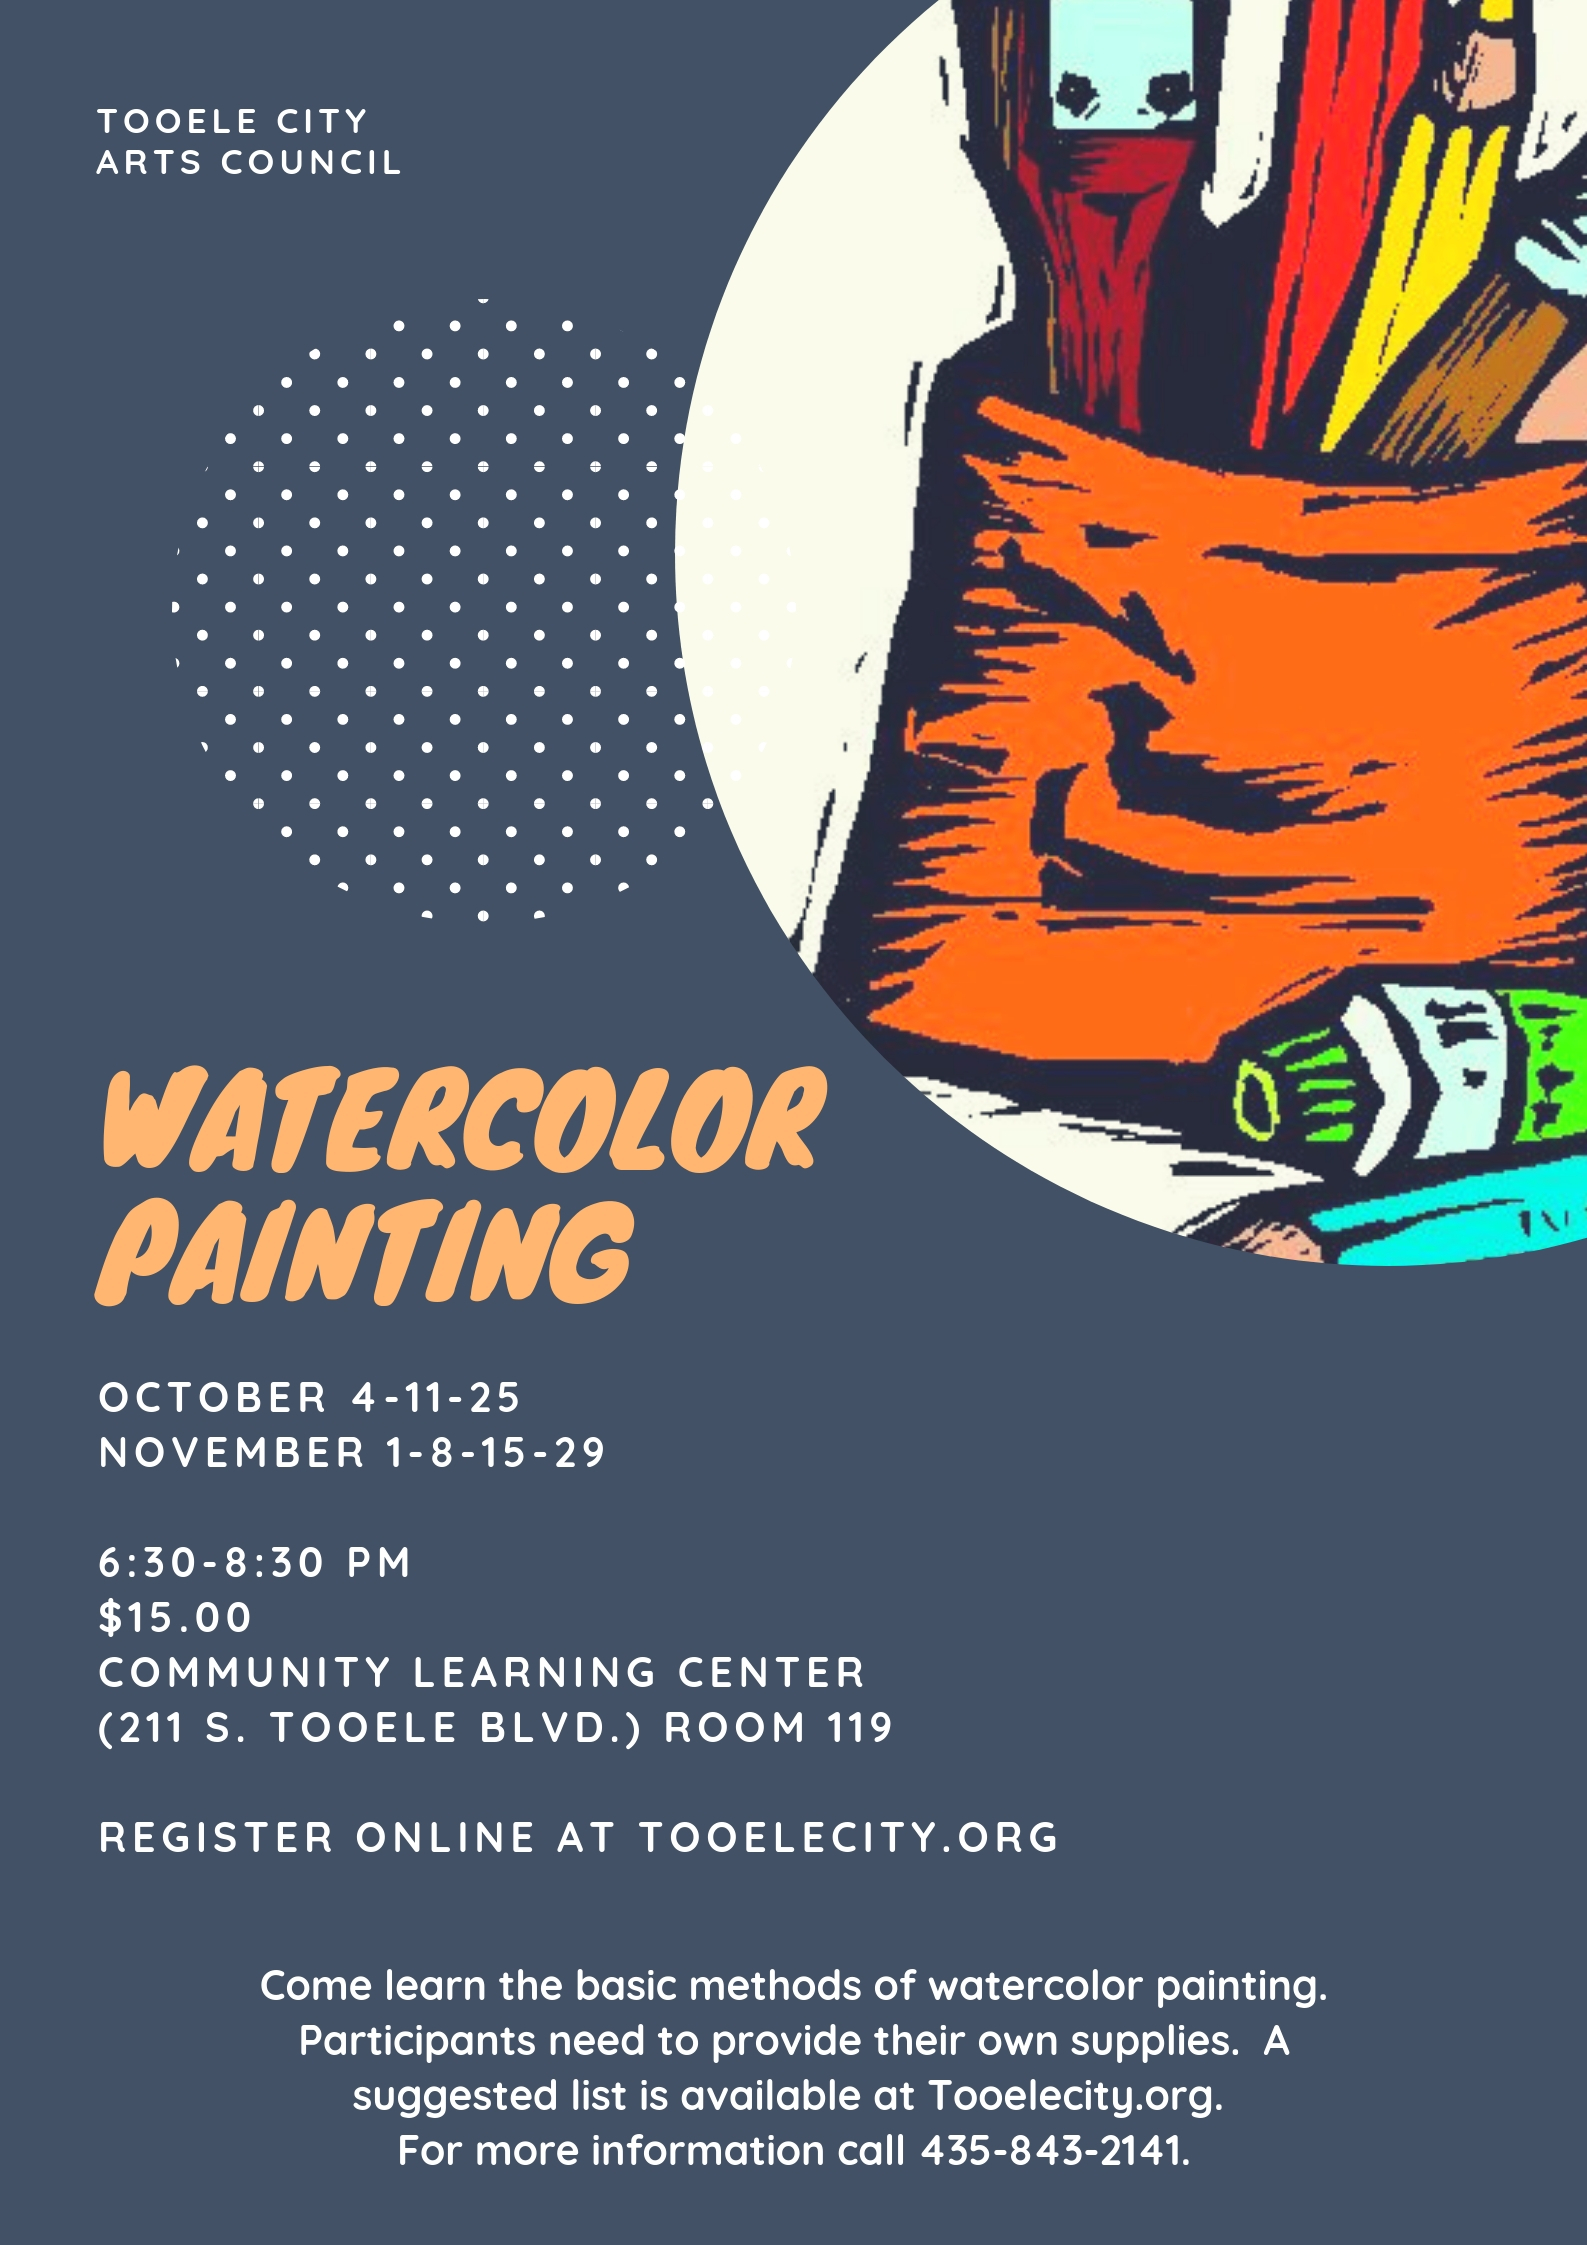 Watercolor Painting Fall 2018 - Begins October 4, 2018